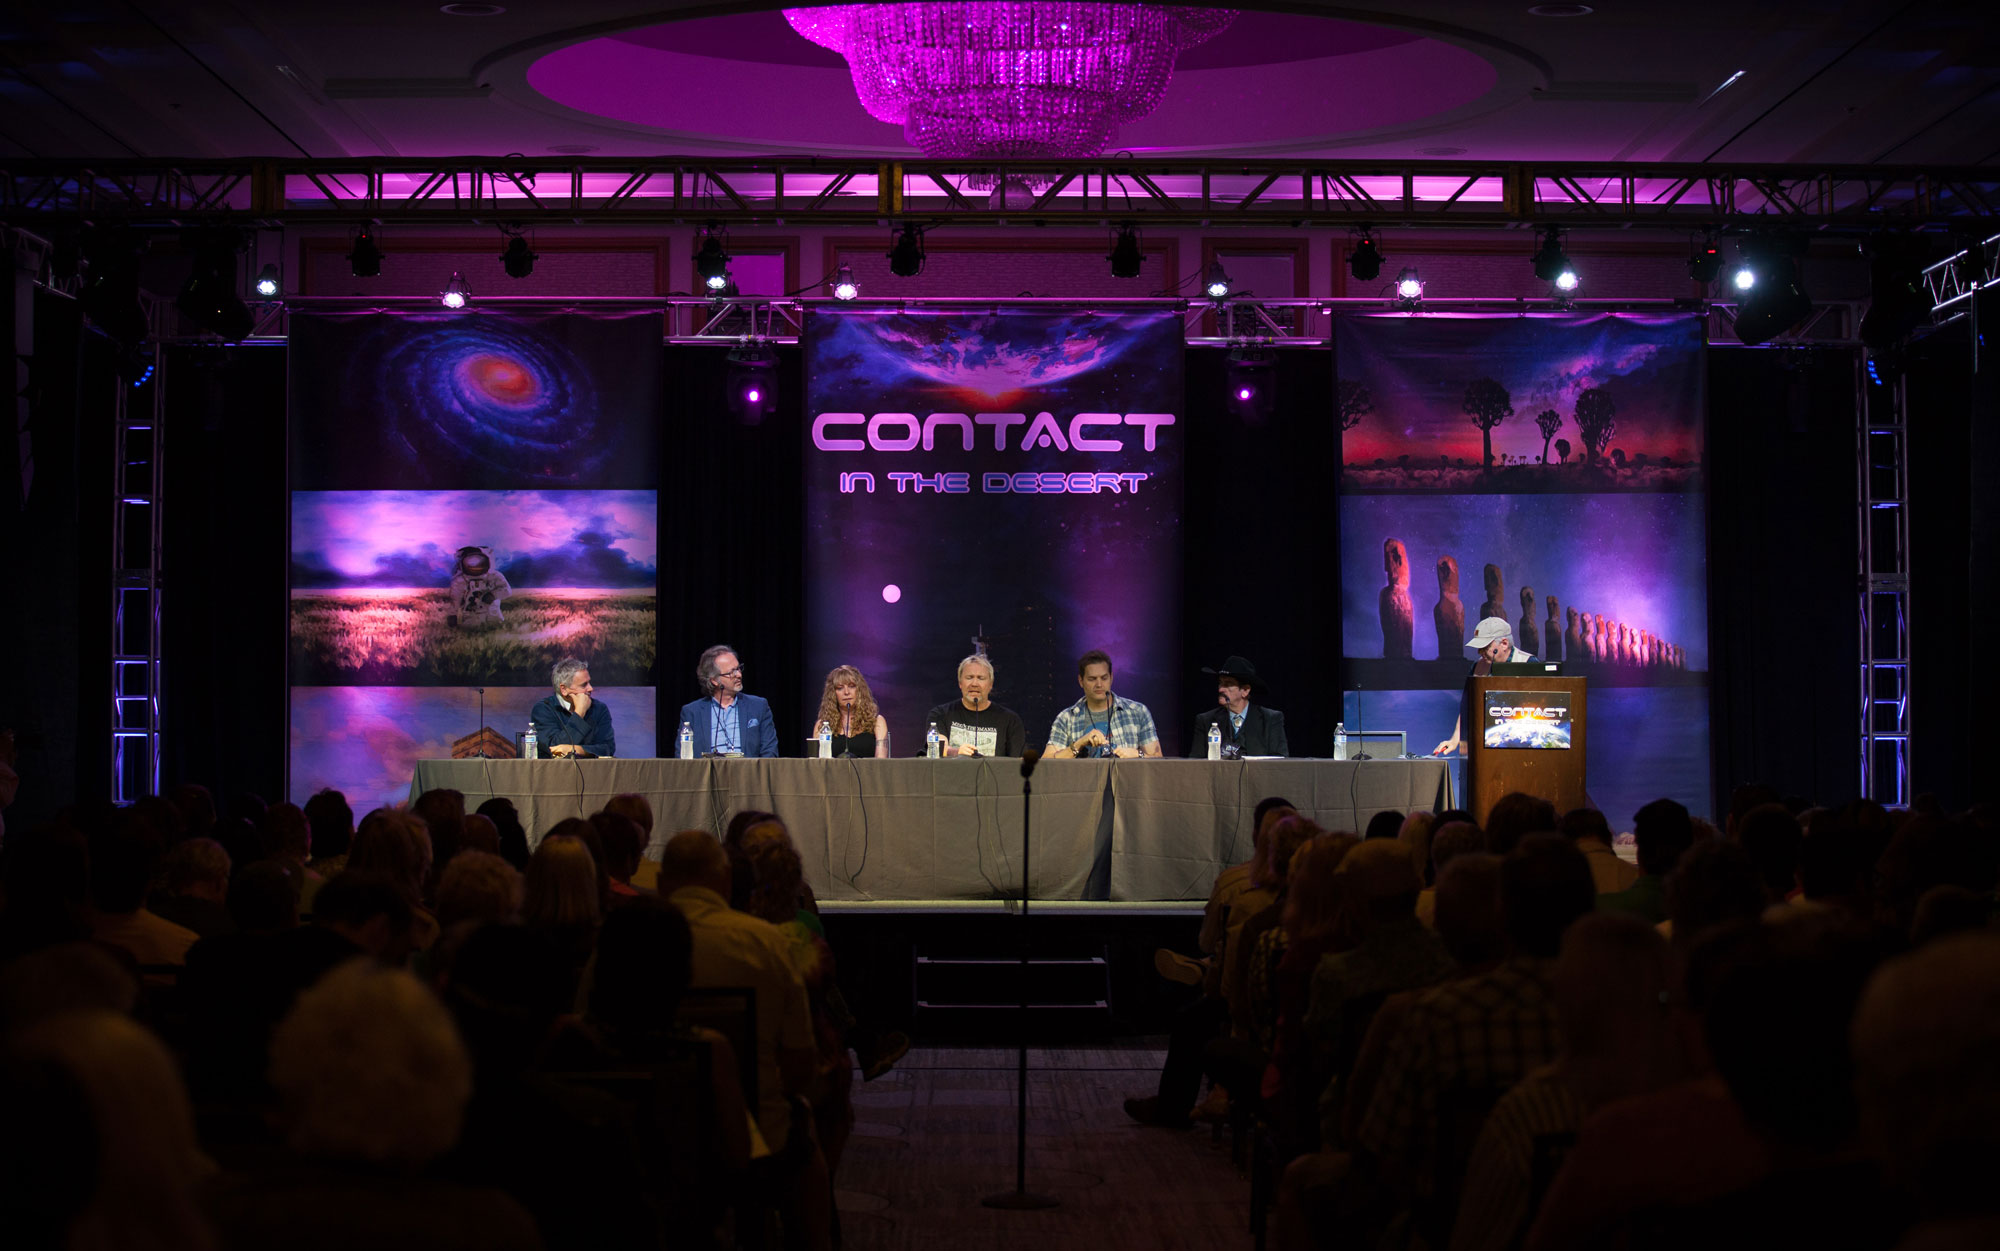 contact-in-the-desert-ufo-conference-panels-3